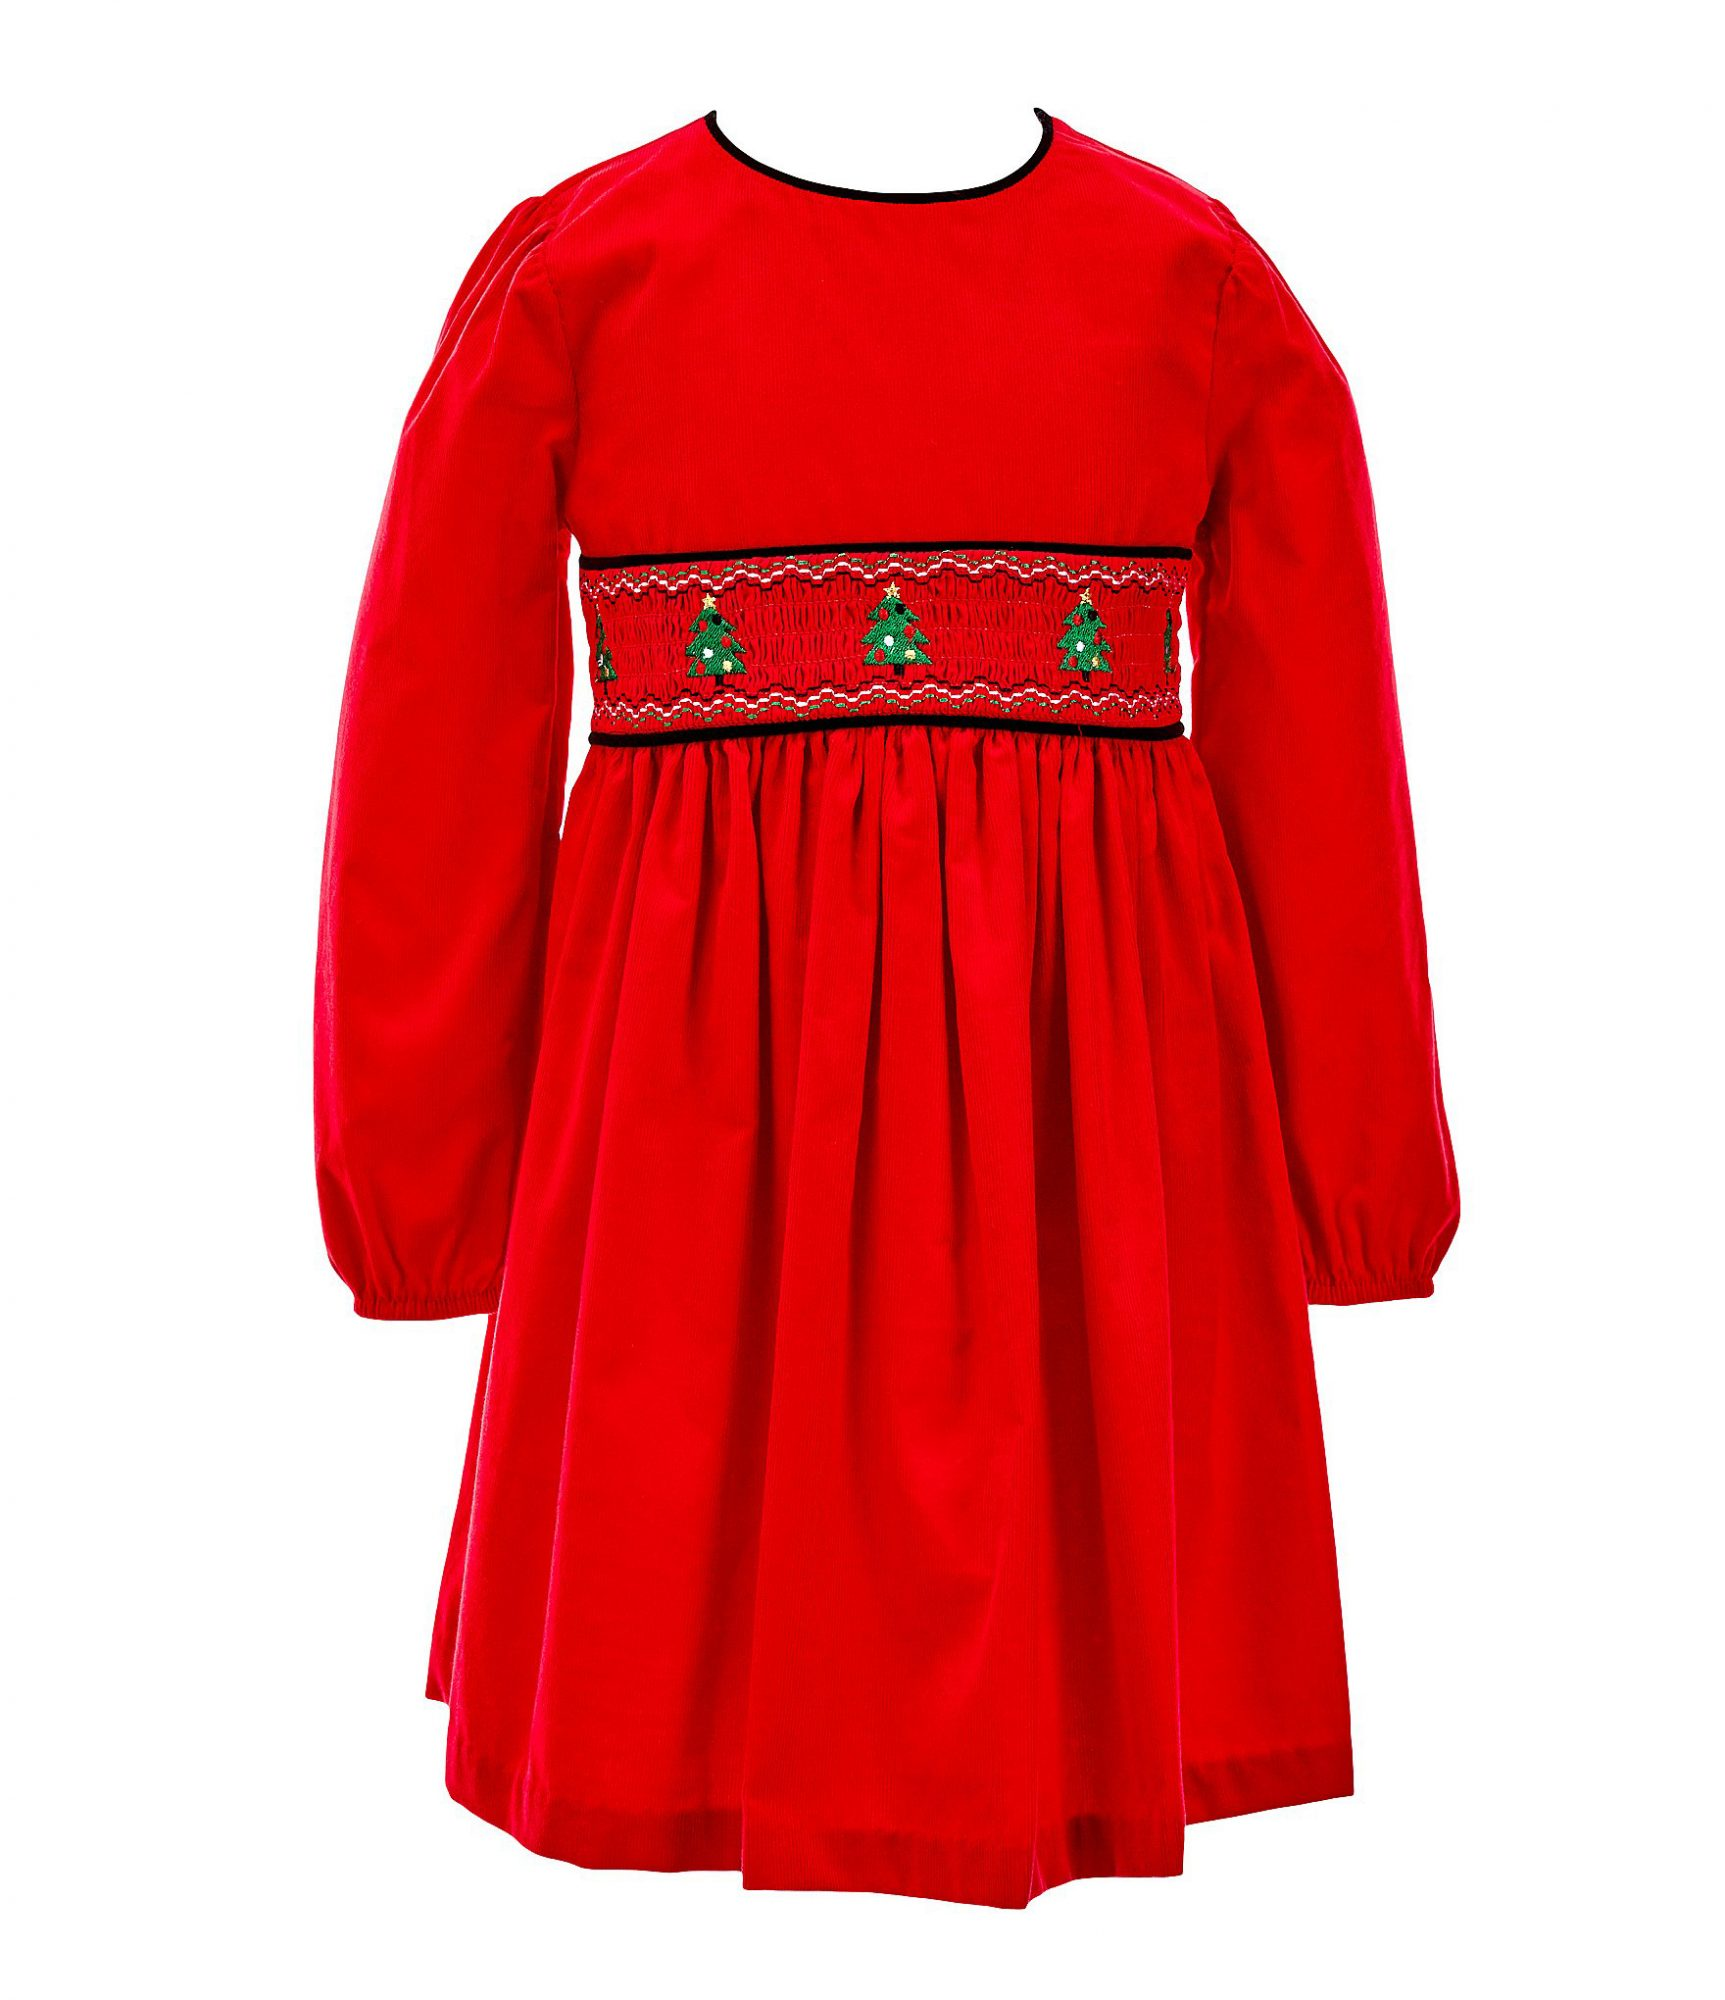 BUY: $40; dillards.com                             Subtle smocking keeps it from getting too cutesy—but still with the traditional style Southern mamas love. It's all in the details when it comes to the back's button closures and tie.